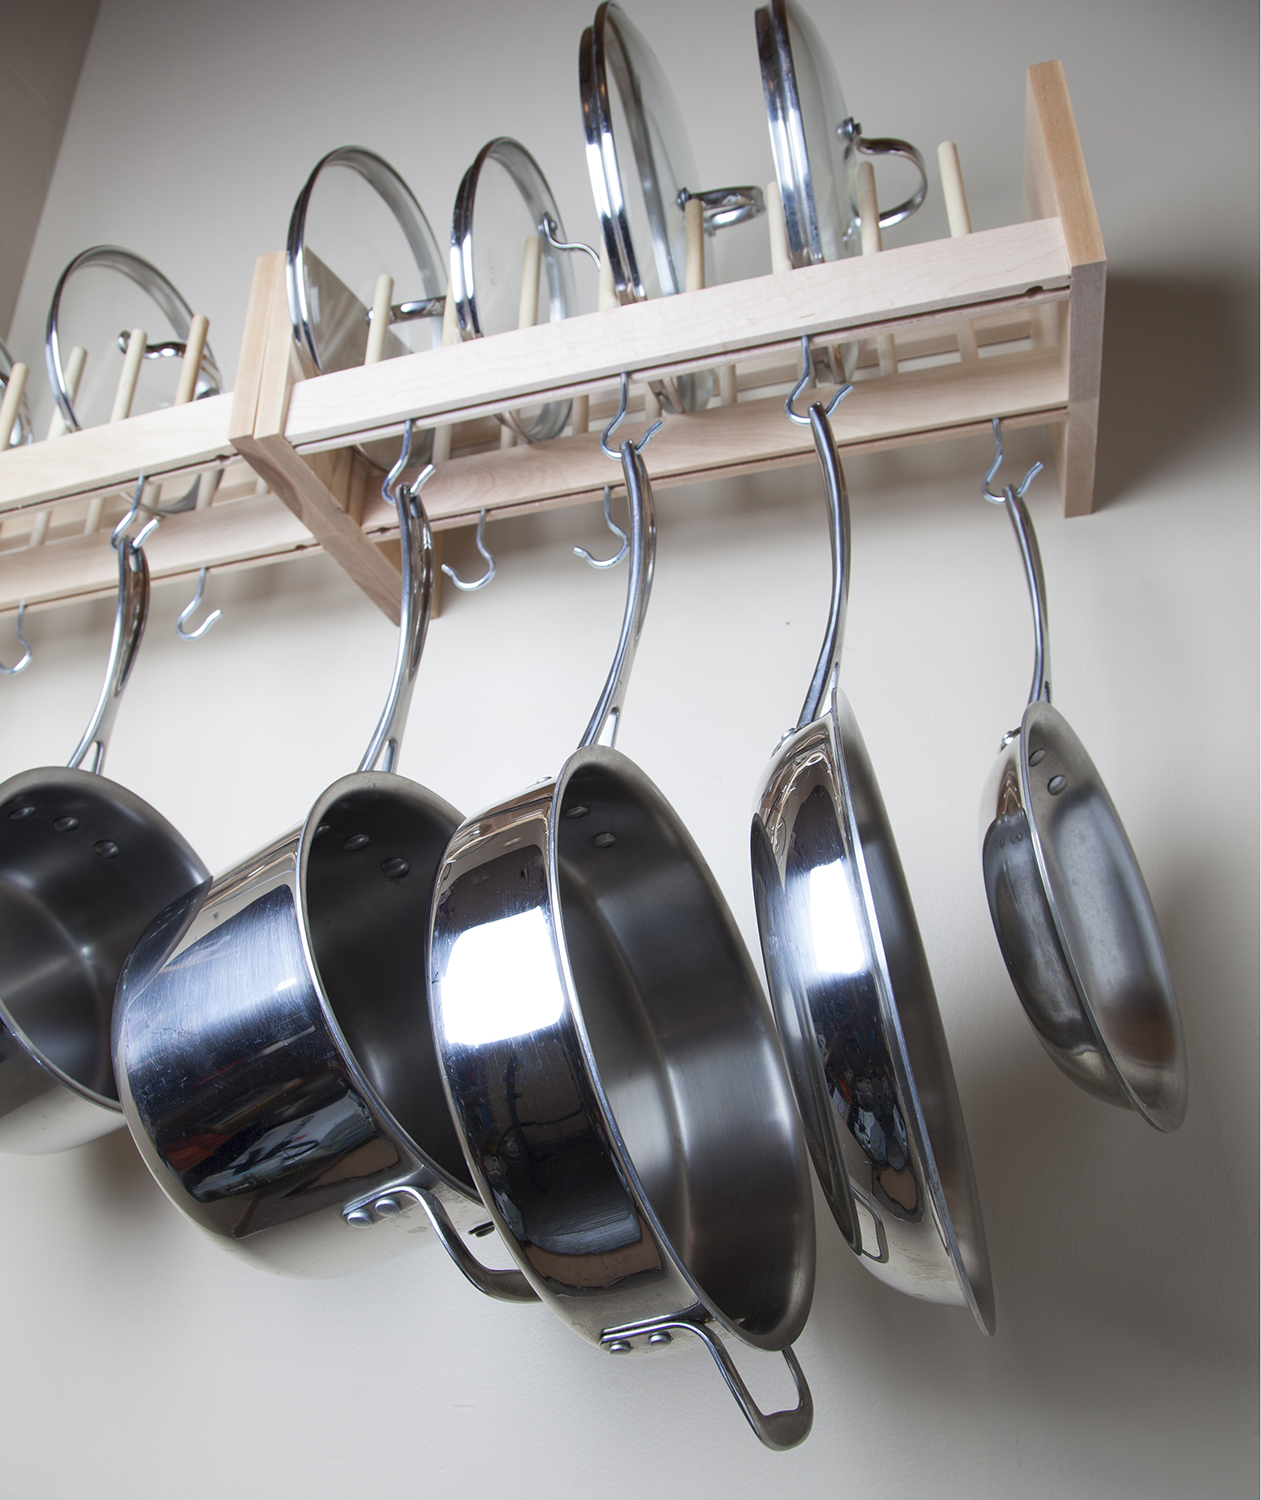 best materials for pots and pans real simple. Black Bedroom Furniture Sets. Home Design Ideas